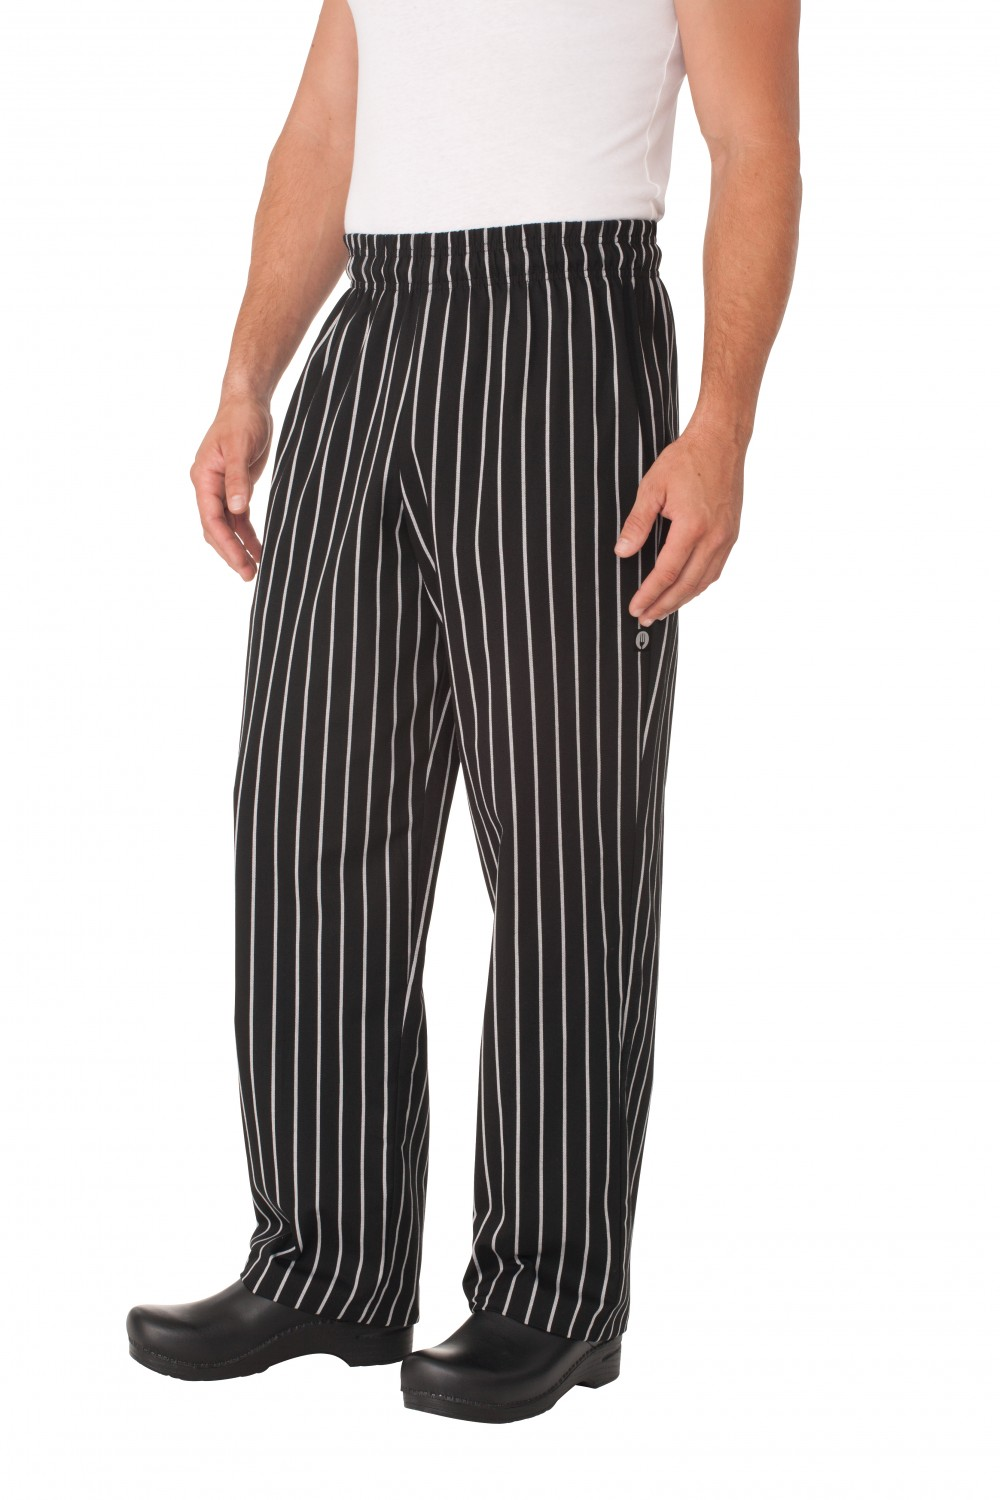 Chef Works GSBP Chalk Stripe Designer Baggy Pants